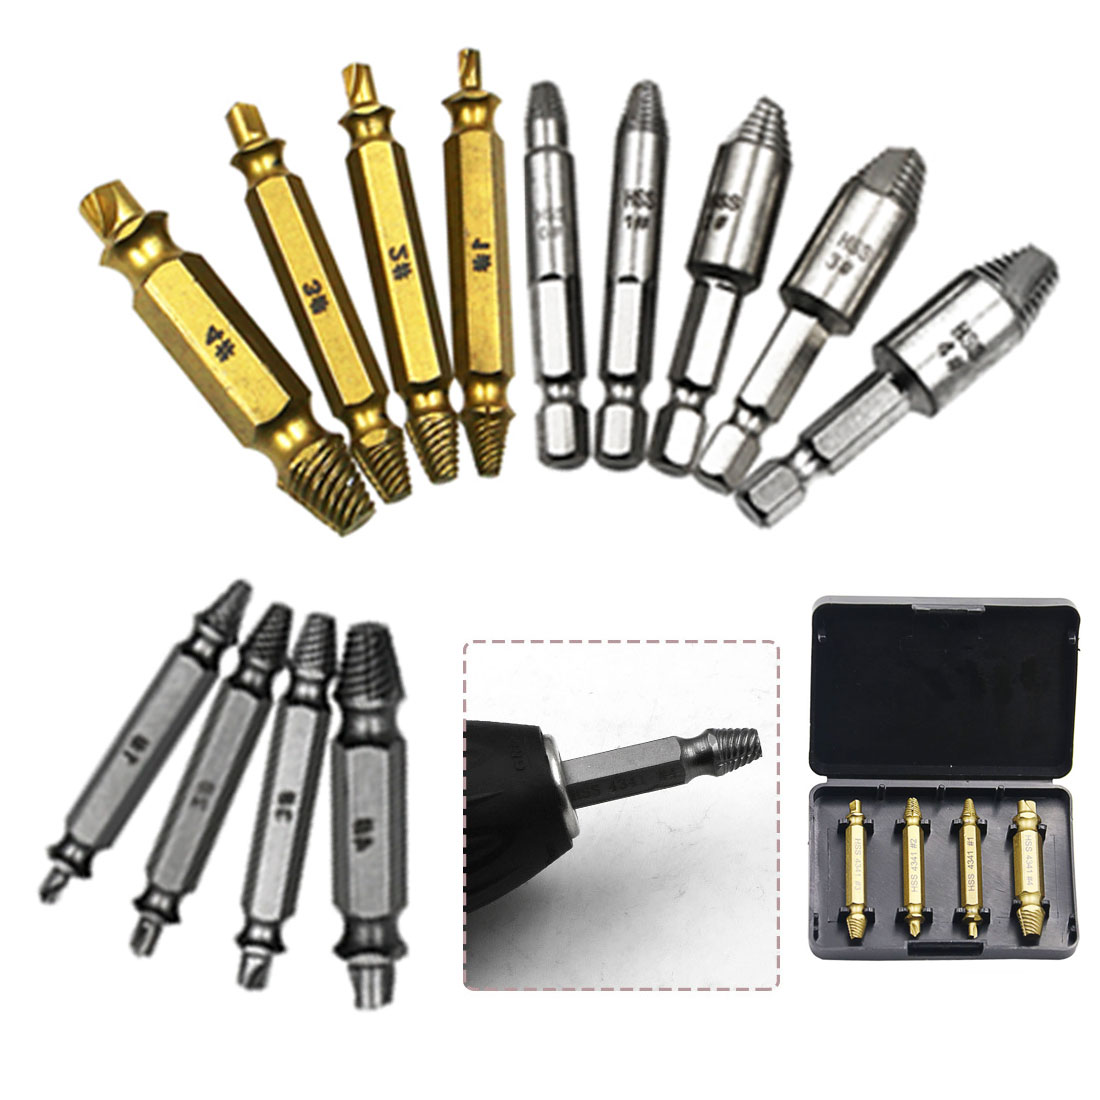 HSS 4341/S2 Out Bits Set Bolt Speed Extractor Guide Screw Silver Drill Alloy Steel Broken Gold Remover Steel Damaged 4pcs/set